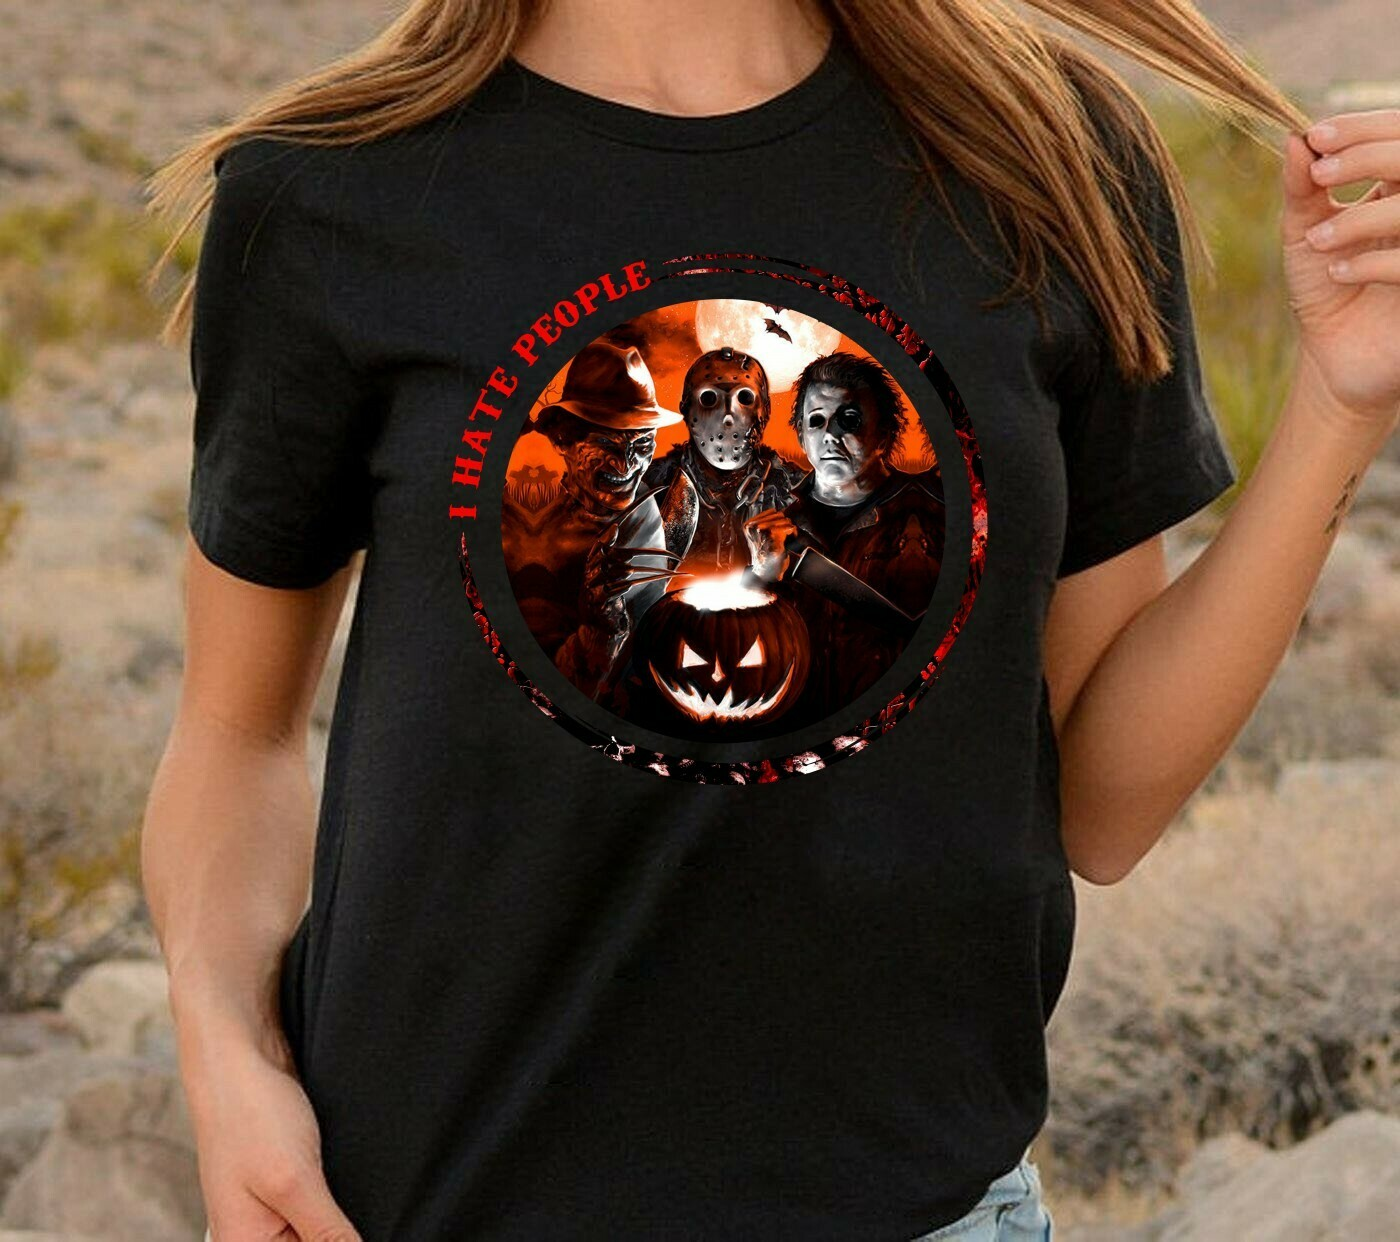 I Hate People Horror Squad Friday The 13th Villains Halloween Movie Freddy Krueger Michael Myers Jason Voorhees Scary Tshirt Long Sleeve Sweatshirt Hoodie Jolly Family Gifts